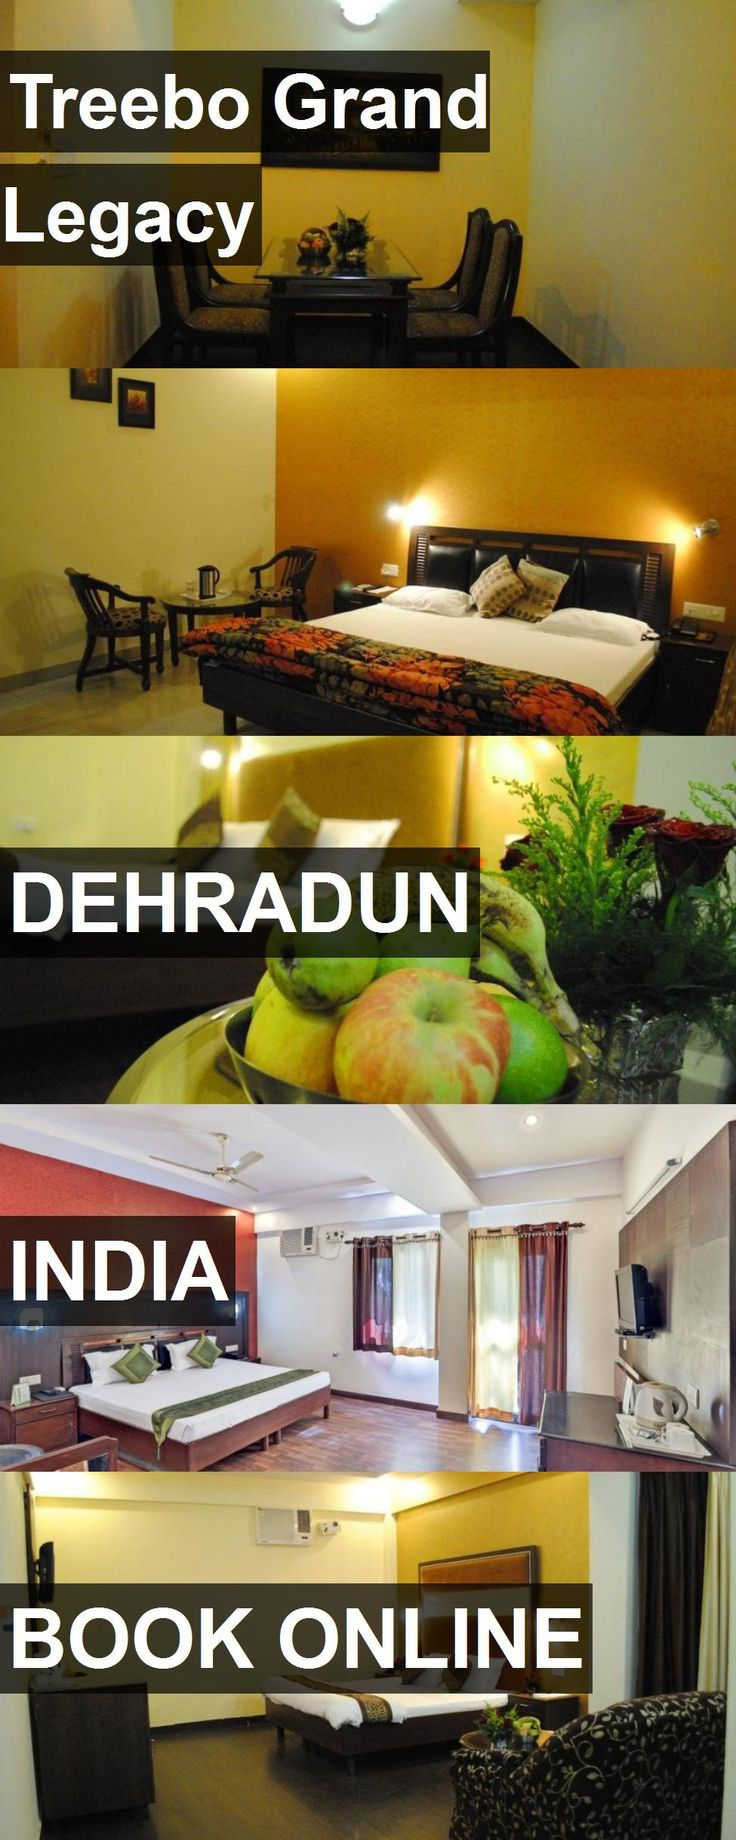 Hotel Treebo Grand Legacy in Dehradun, India. For more information, photos, reviews and best prices please follow the link. #India #Dehradun #TreeboGrandLegacy #hotel #travel #vacation